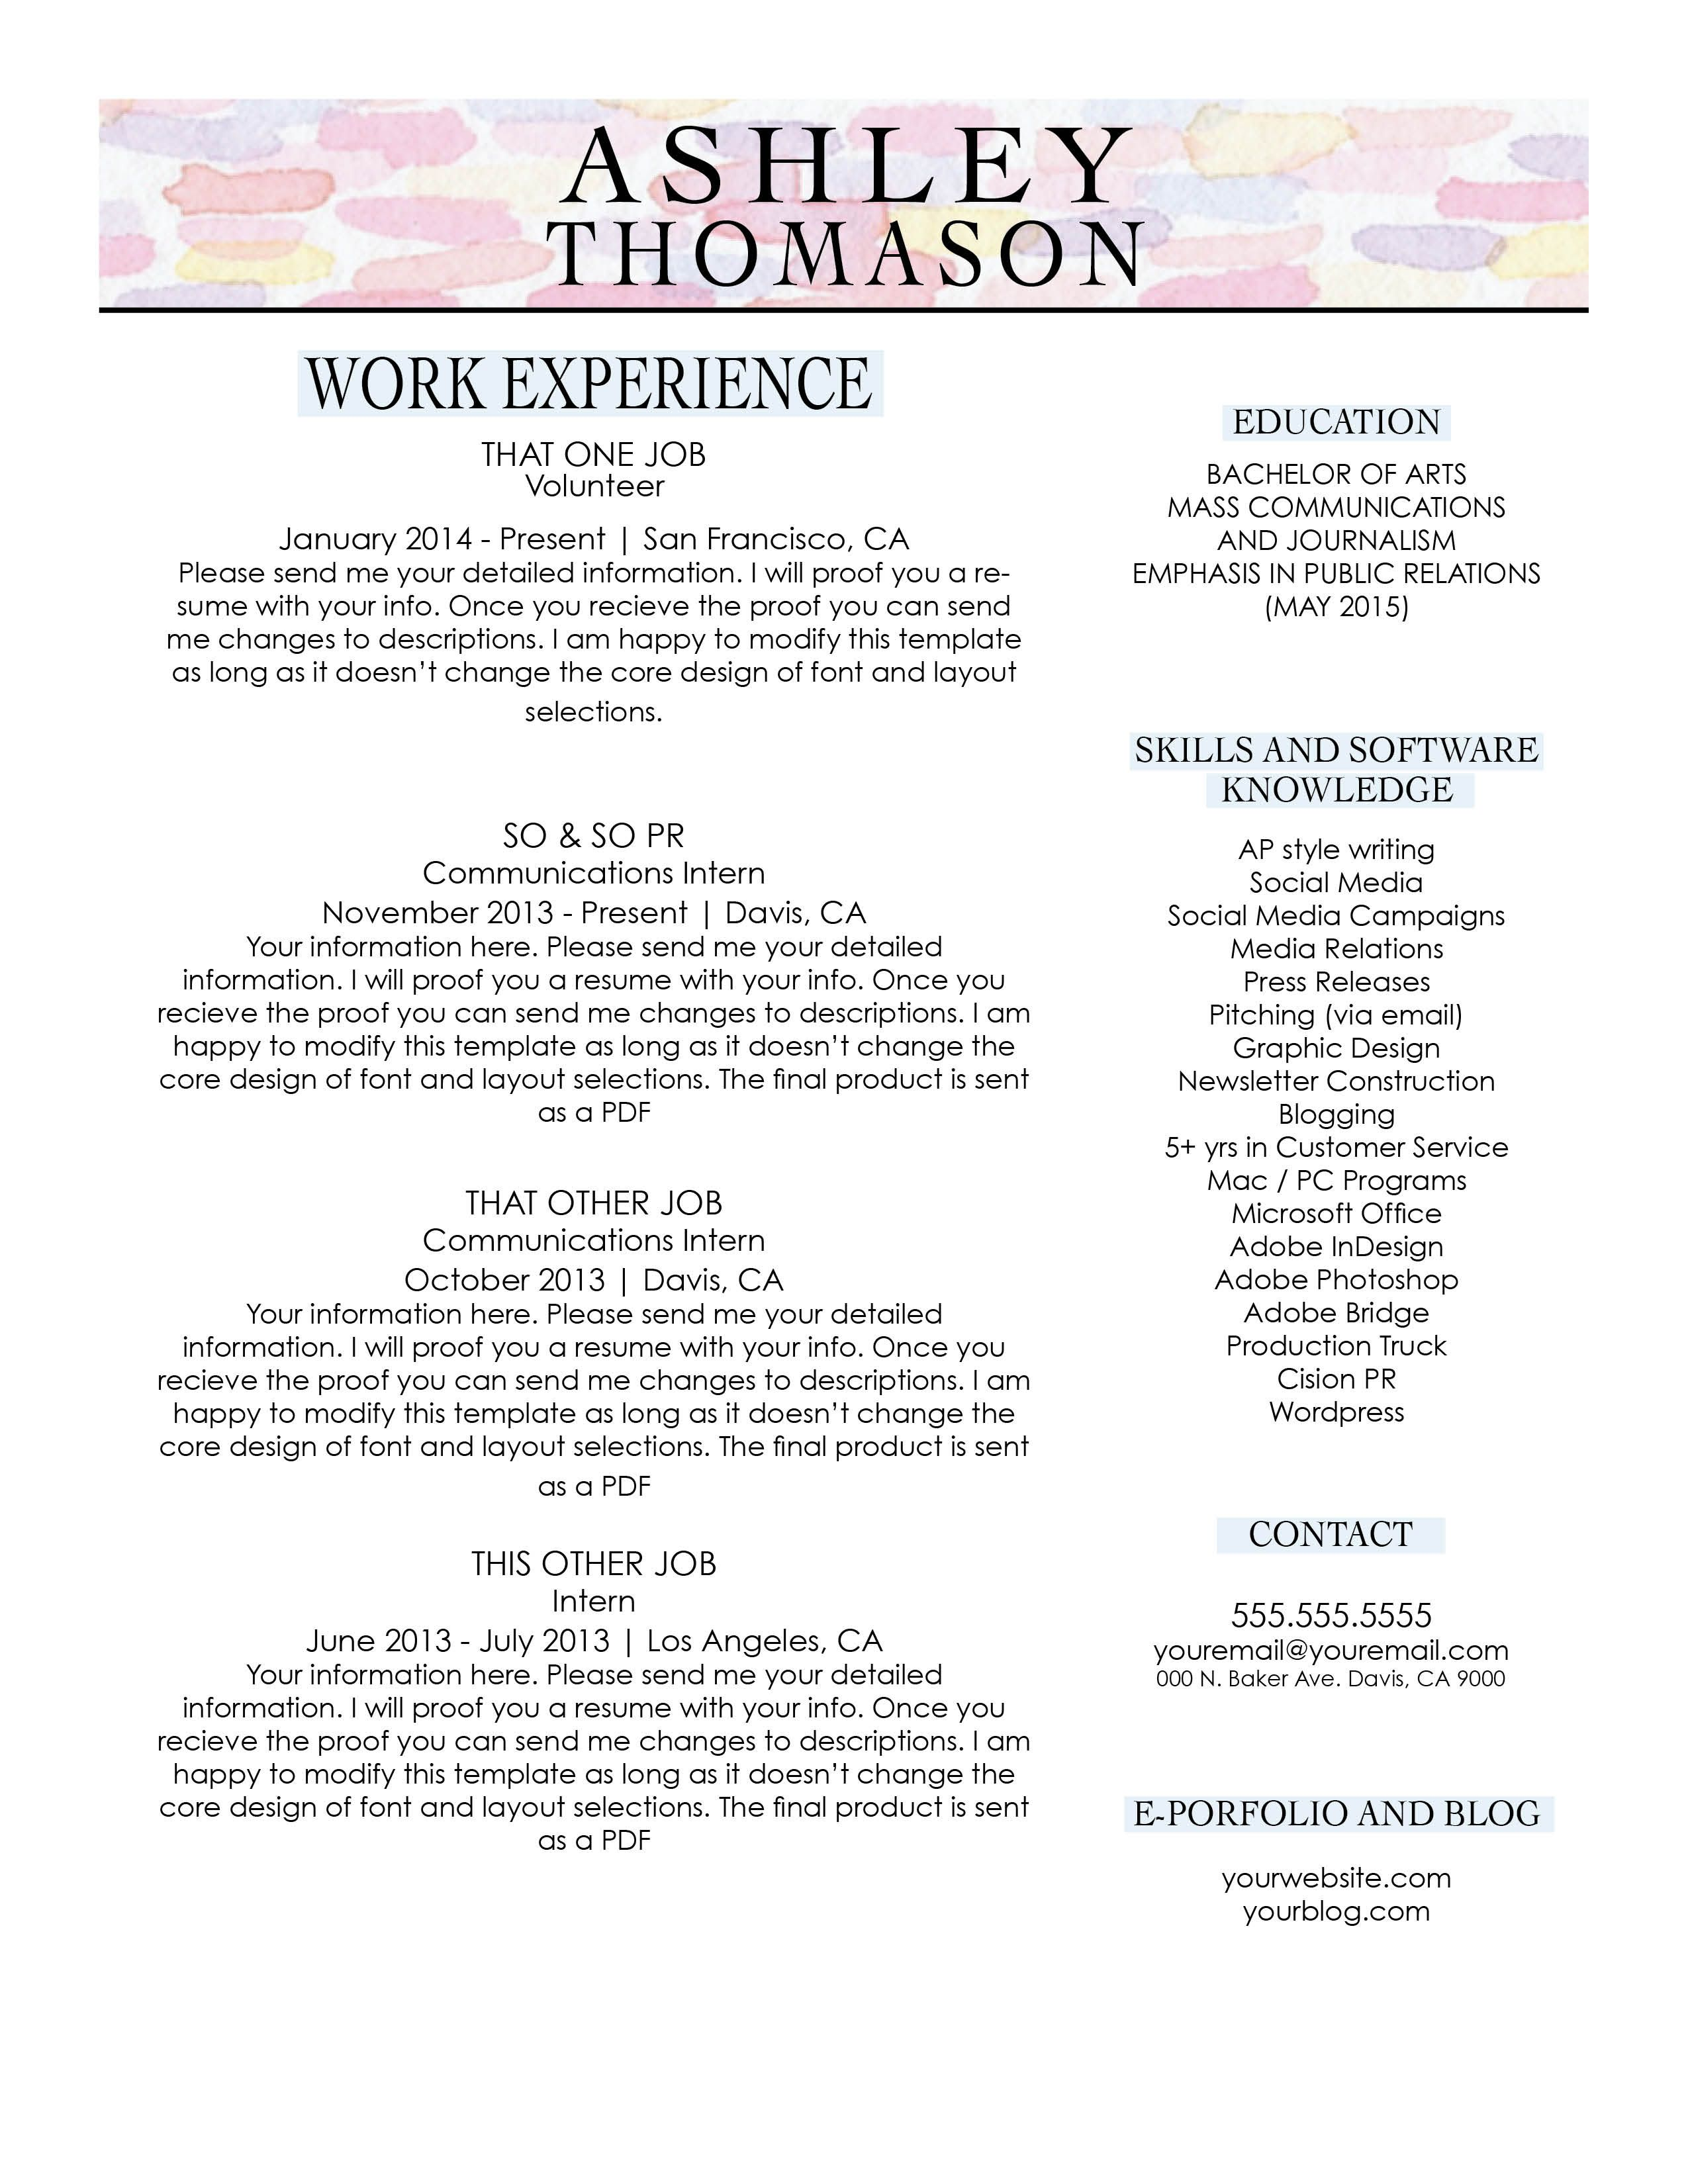 Custom Resume Design By Resumaker On Etsy EstyComShop